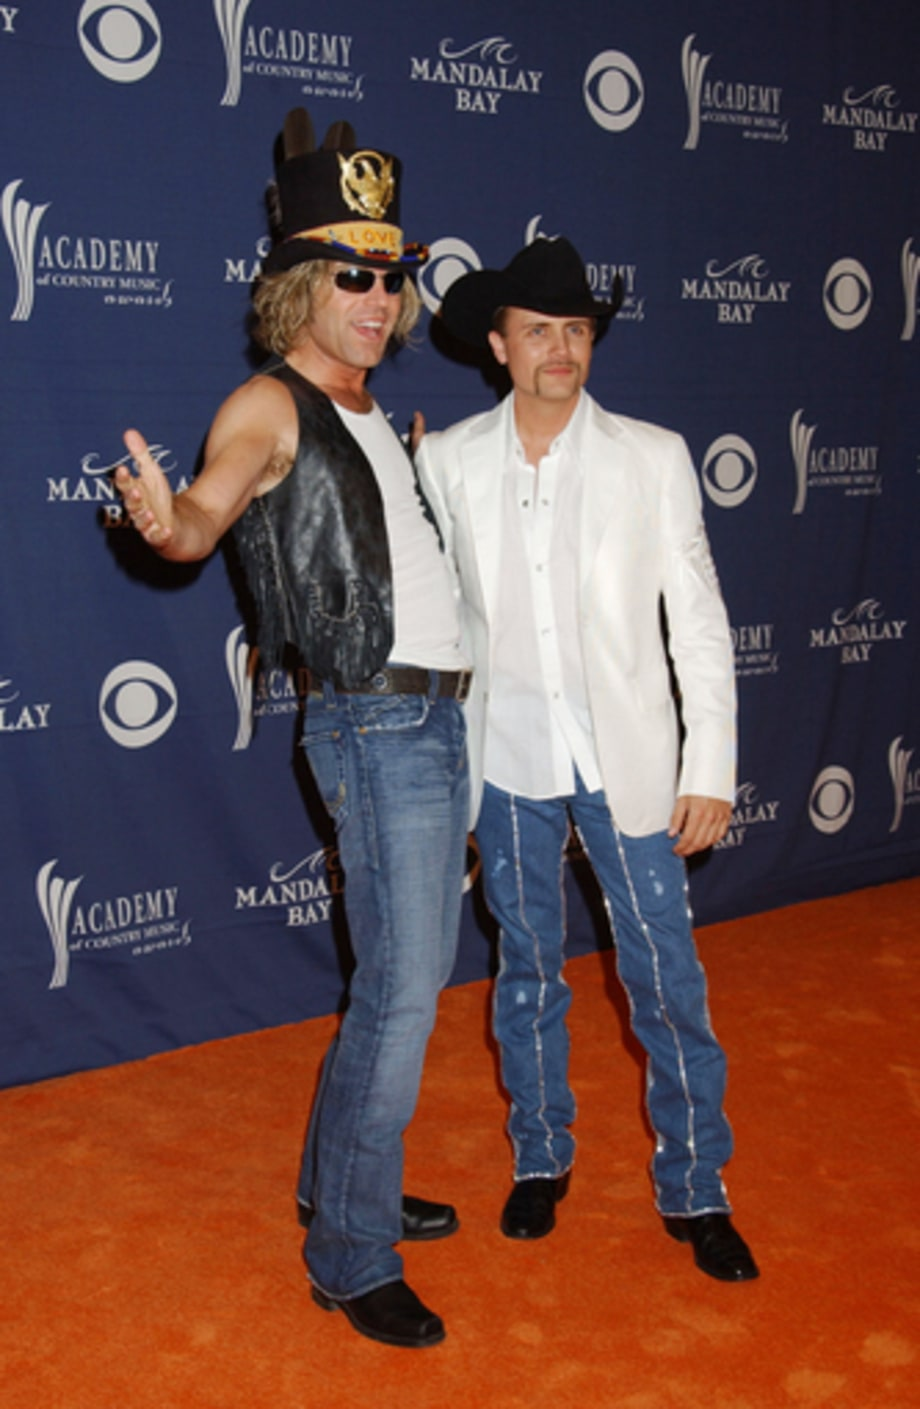 Big & Rich Photos